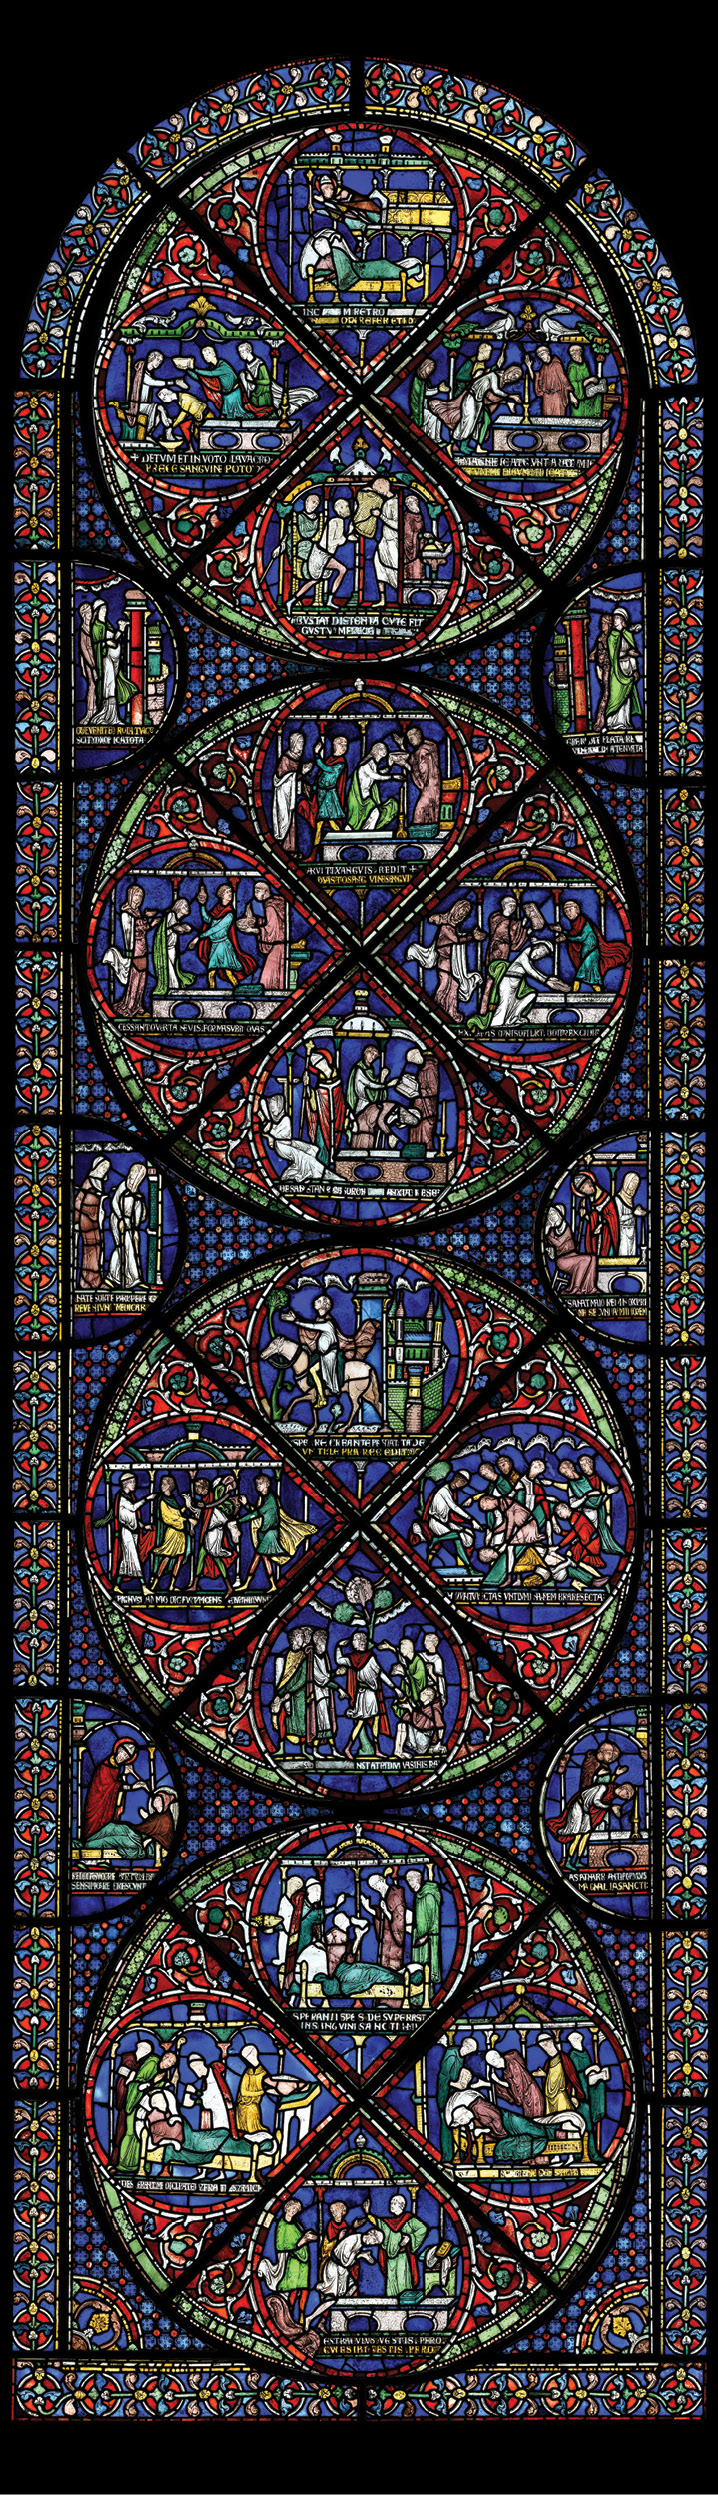 above Becket's tomb is depicted in the Miracle Windows as it appeared before the cathedral was rebuilt and his remains were translated to a new and more elaborate shrine on 7 July 1220. The sides of the protective marble chest were pierced by oval portholes (coloured blue in this depiction) through which pilgrims were able to touch Becket's coffin.